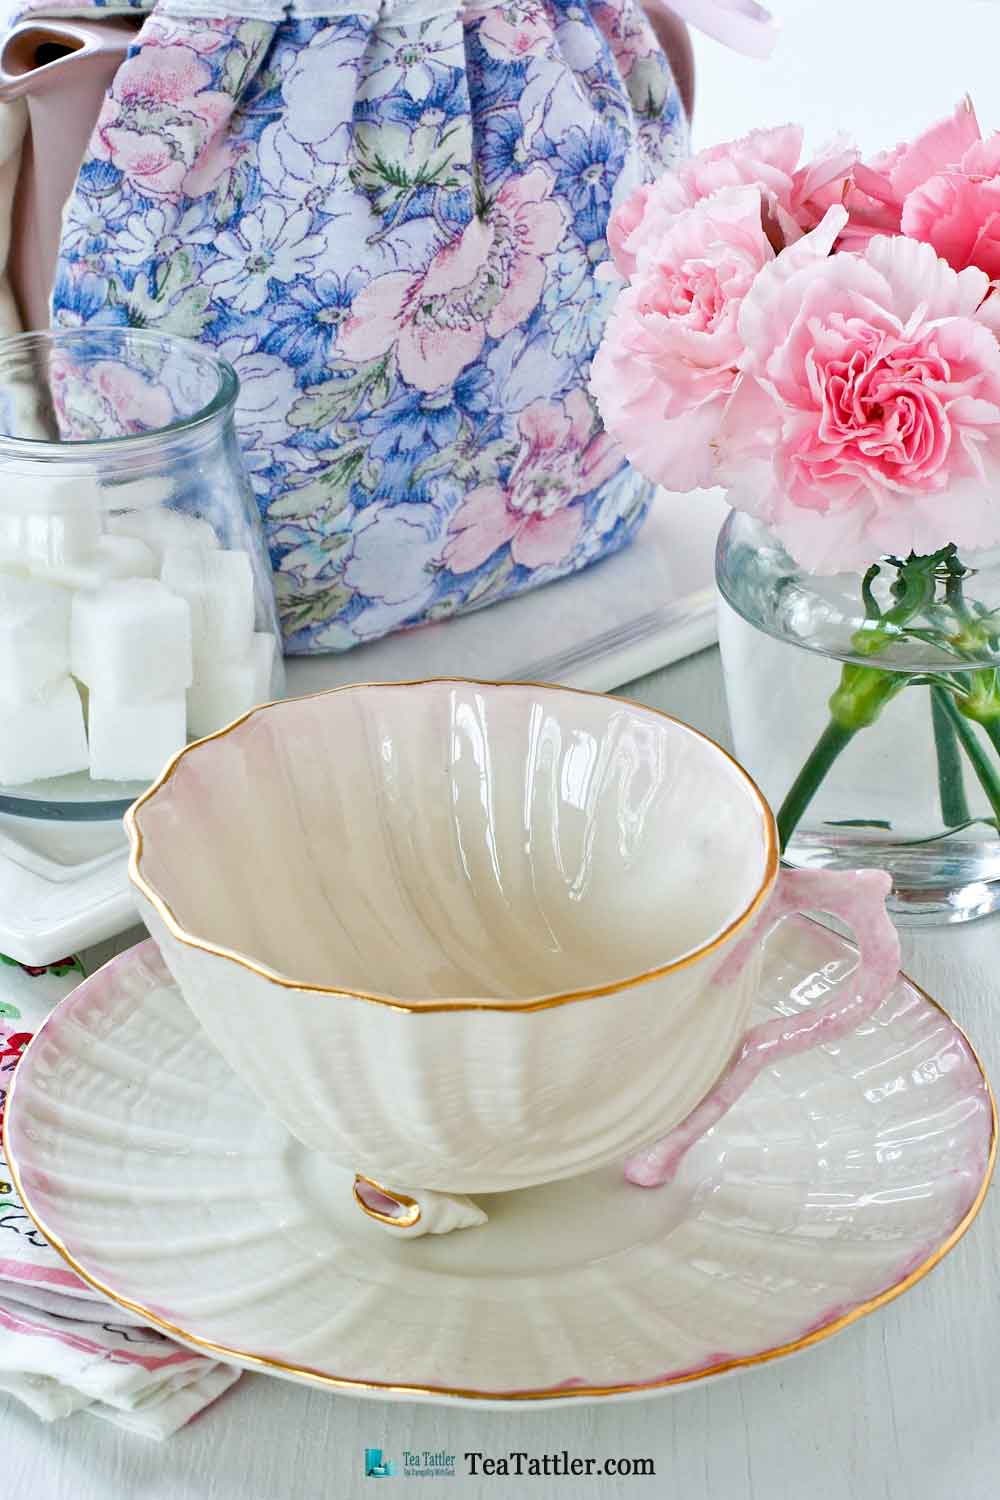 Neptune Seashell, Belleek - a delicate soft pink scooped shell teacup with two tiny conch shell feet and sculptured coral handle. | TeaTattler.com #neptuneseashellteacup #belleek